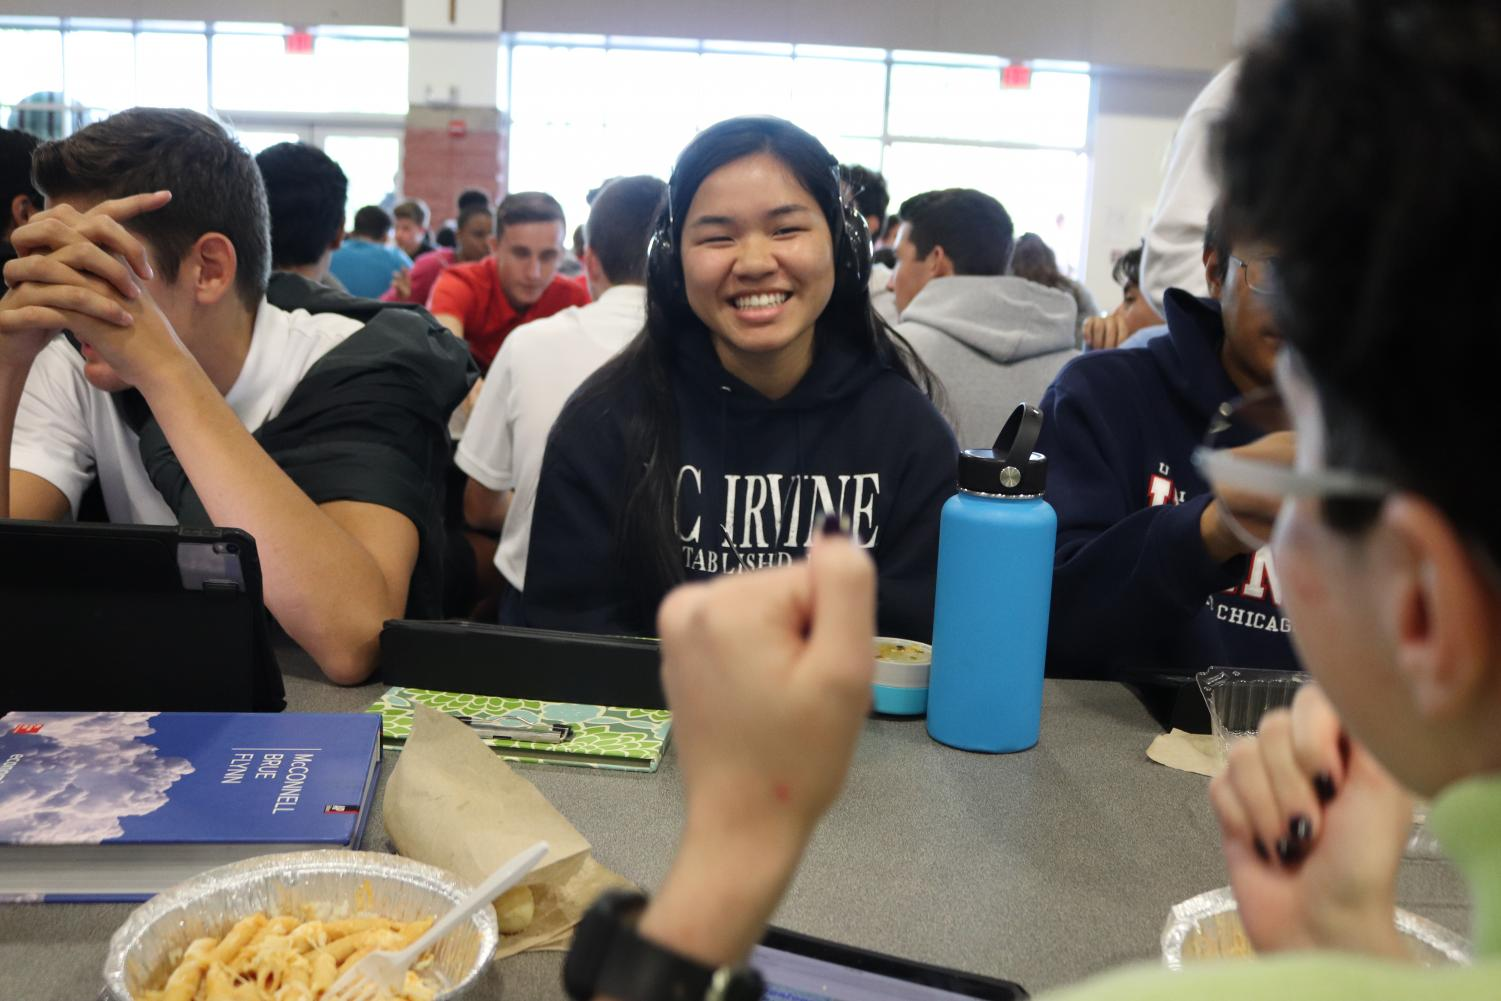 SILLY SMILES: Senior Maithu Tran laughs as a friend sitting across from her - senior Claire LaFont - demonstrates a silly dance while at lunch in the LeVecke Center. Tran was one of the 11 ASL IV students to participate in the Deaf for a Day experience on Oct. 3.